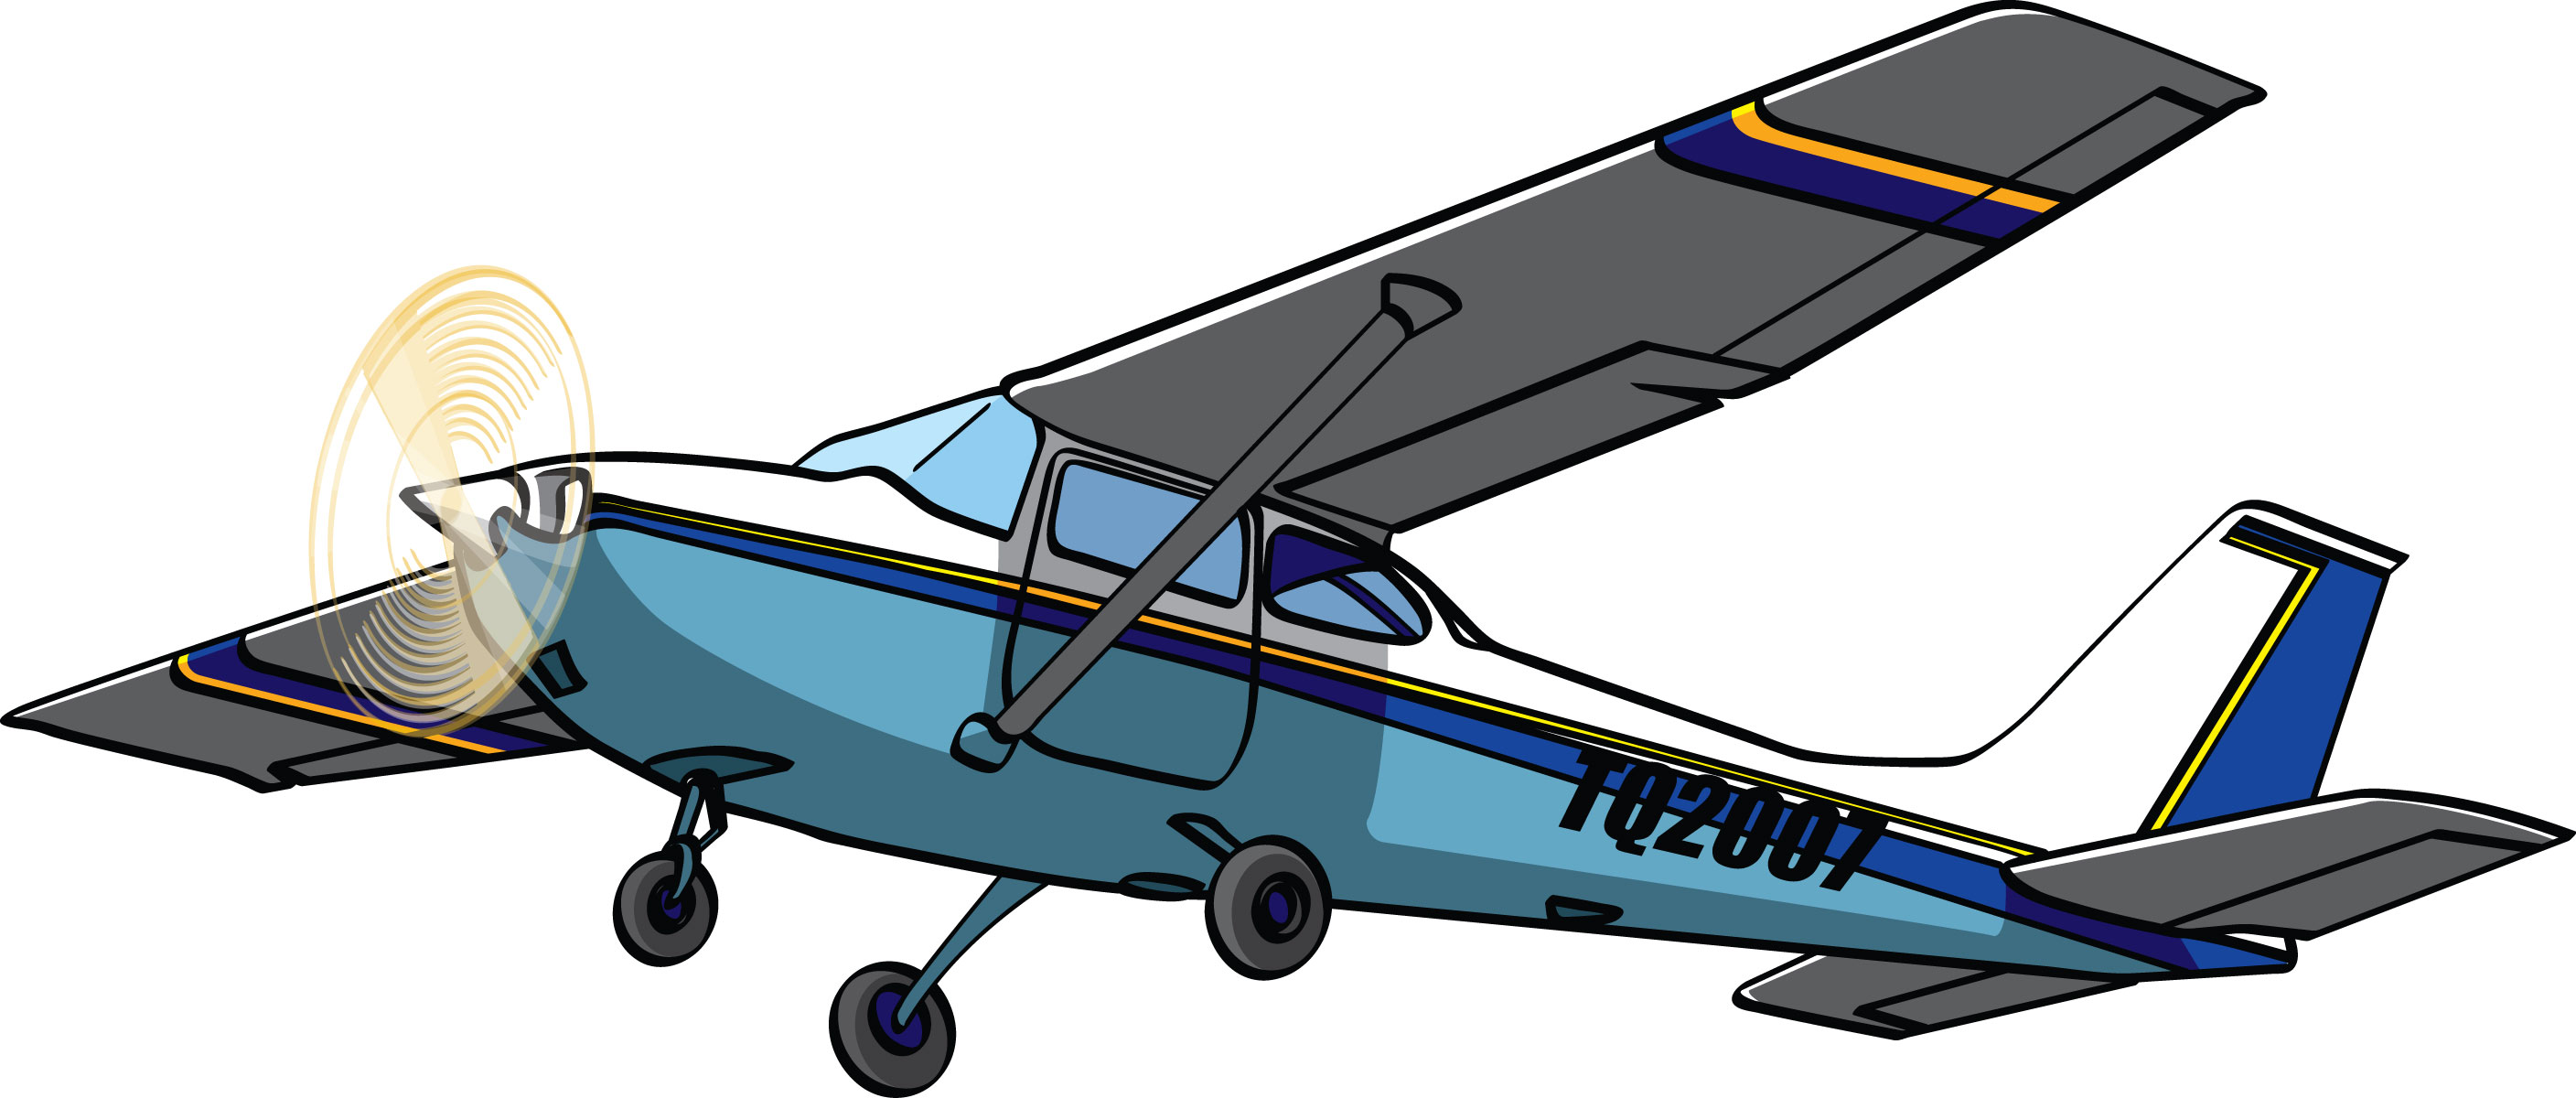 Jet Fighter clipart cessna airplane #10